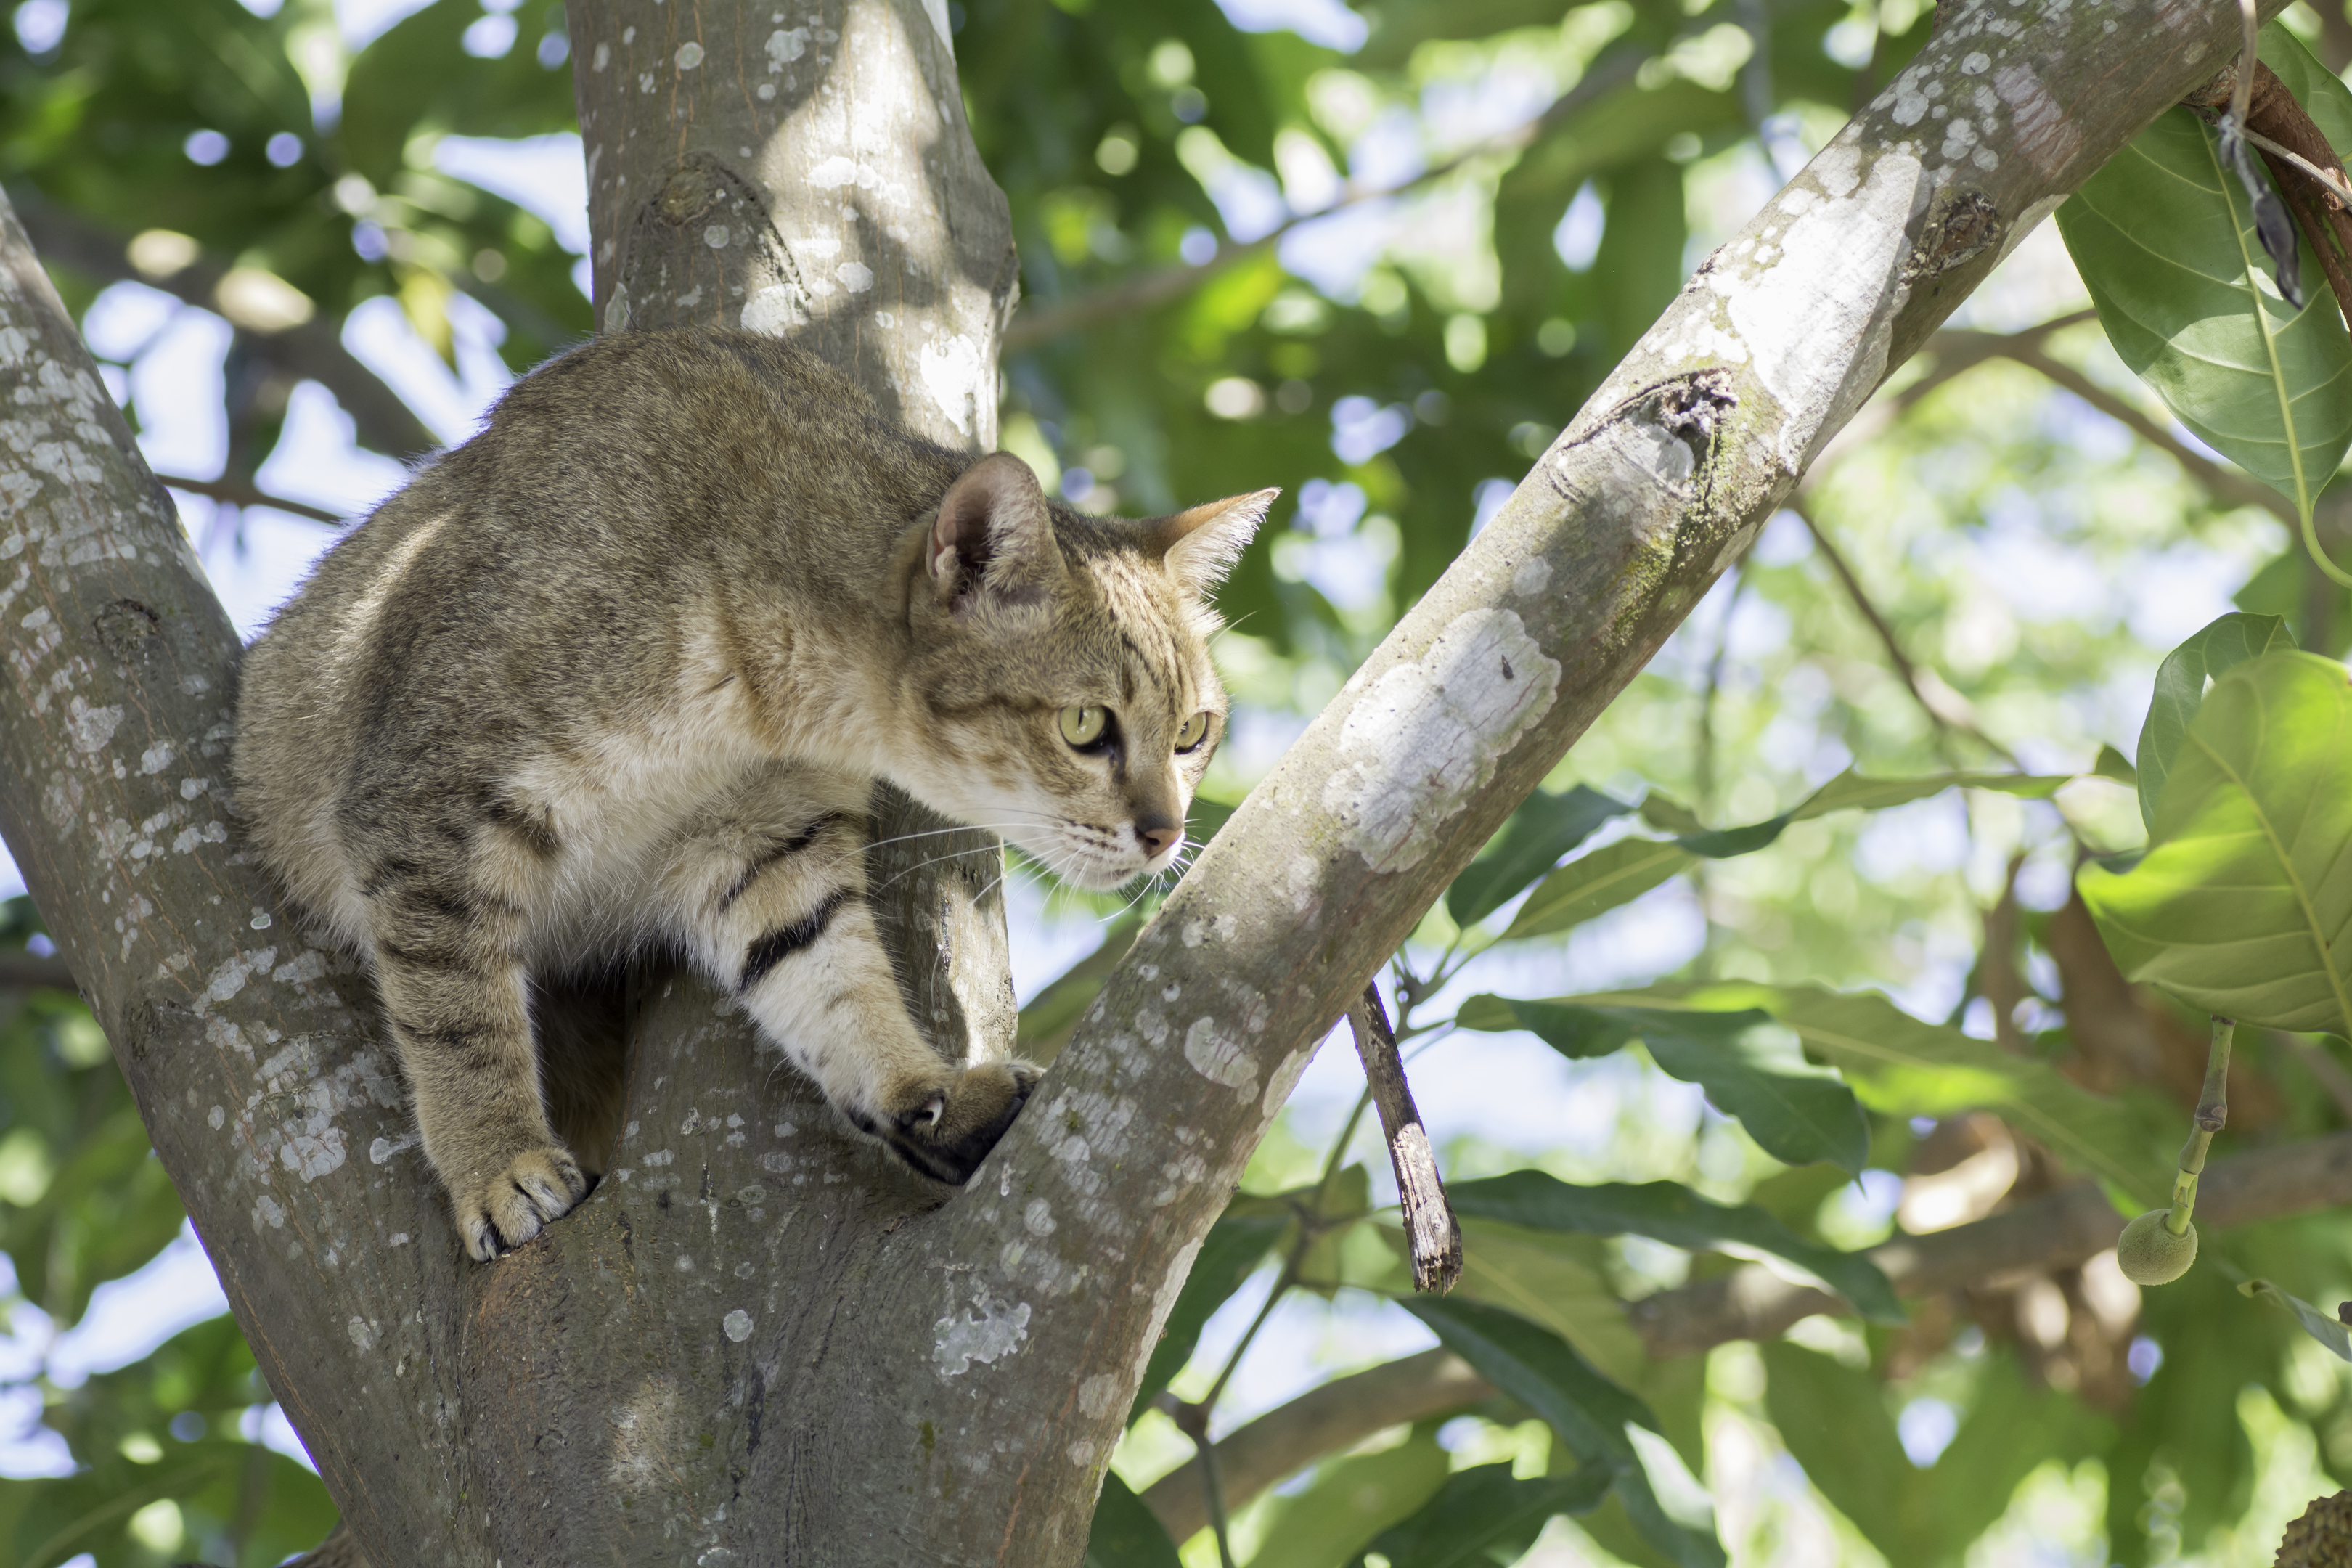 A cat in a tree. Picture not of incident.